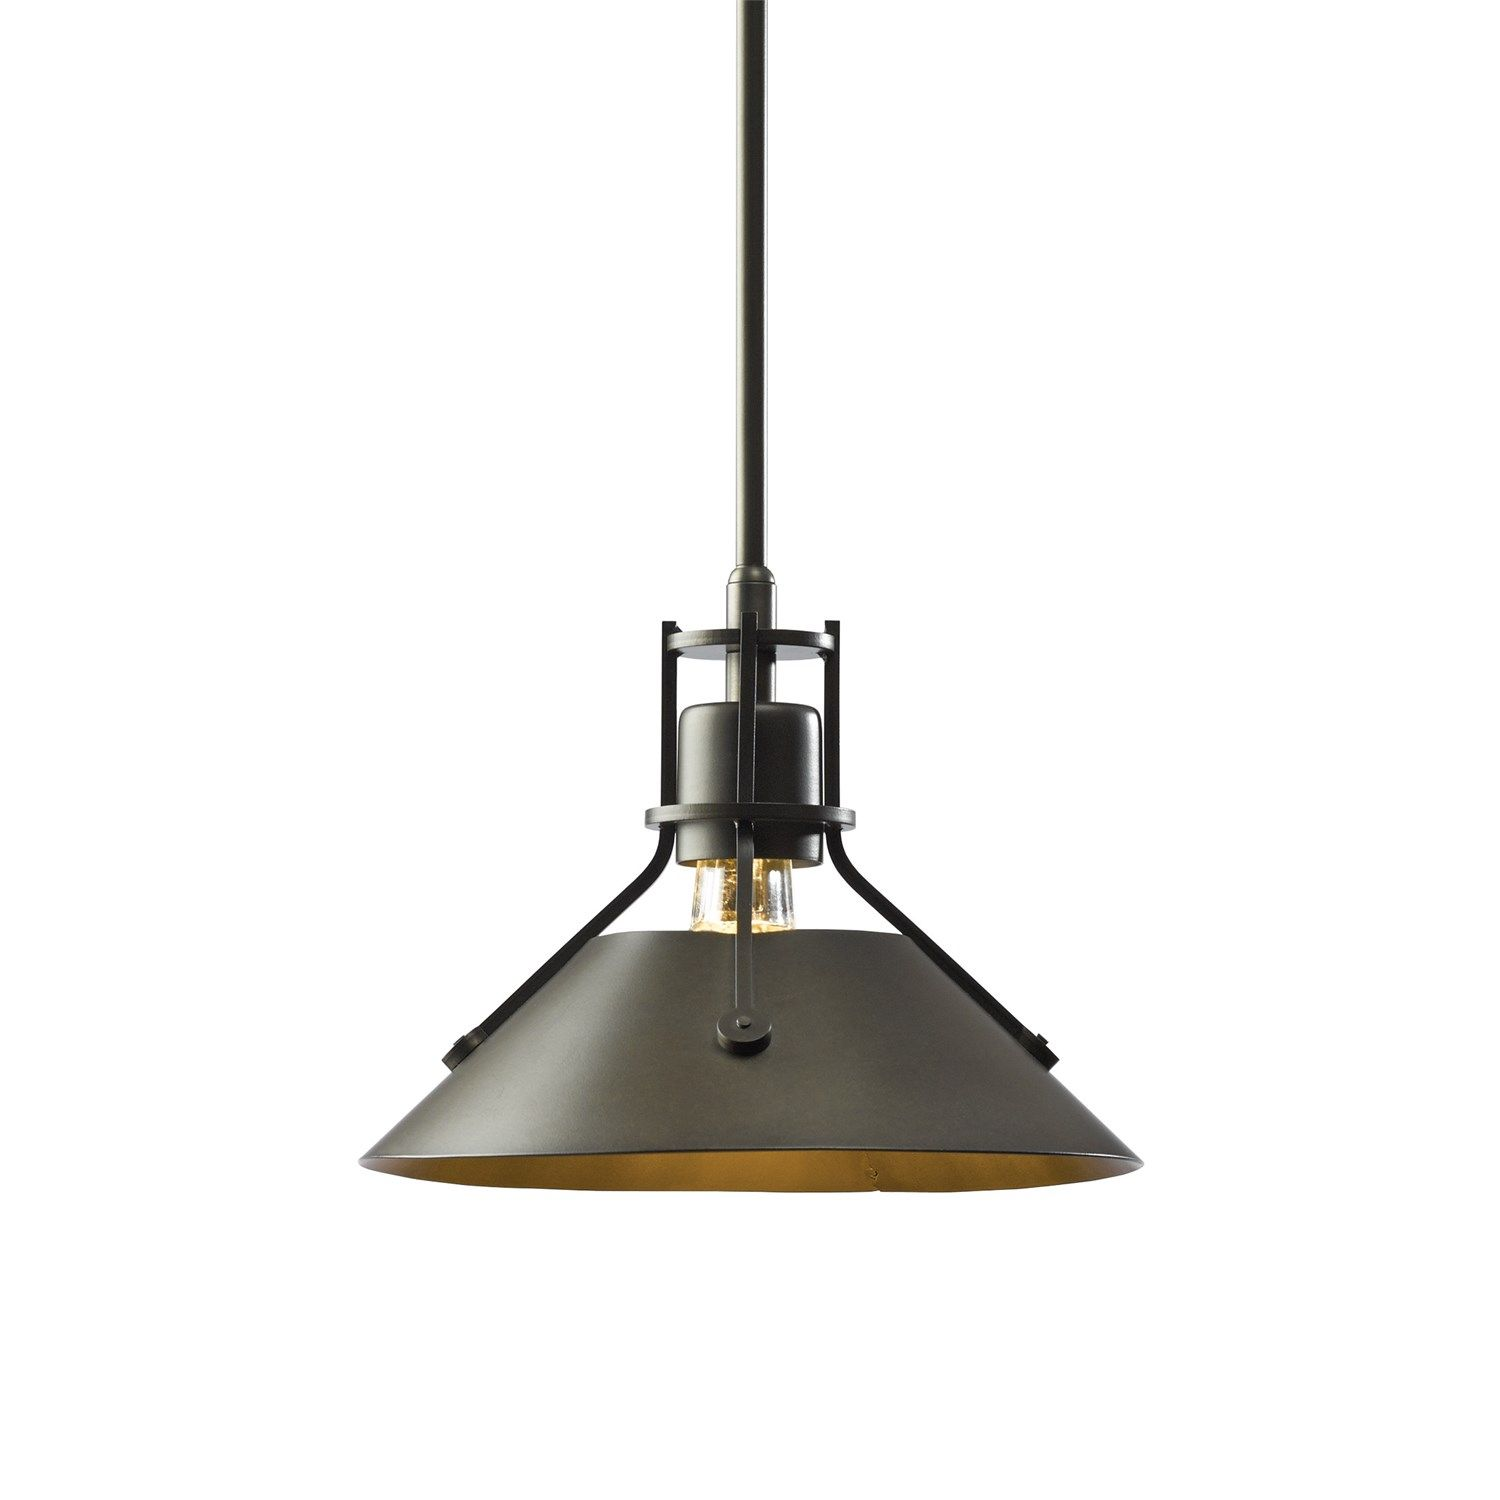 Hubbardton forge henry light kitchen pendant kitchen